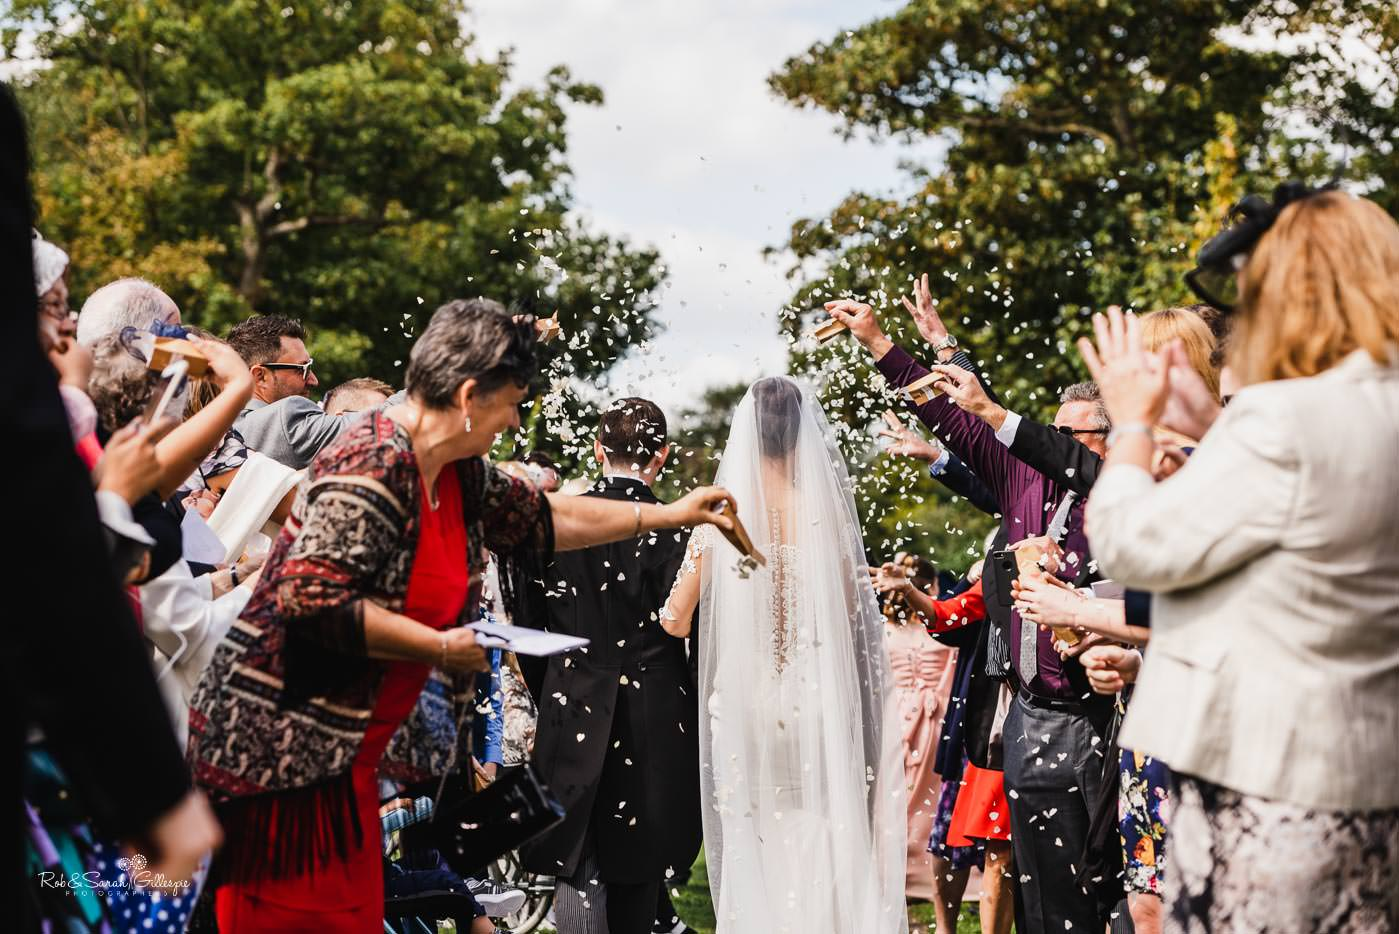 Wedding confetti at Bourton-on-Dunsmore church